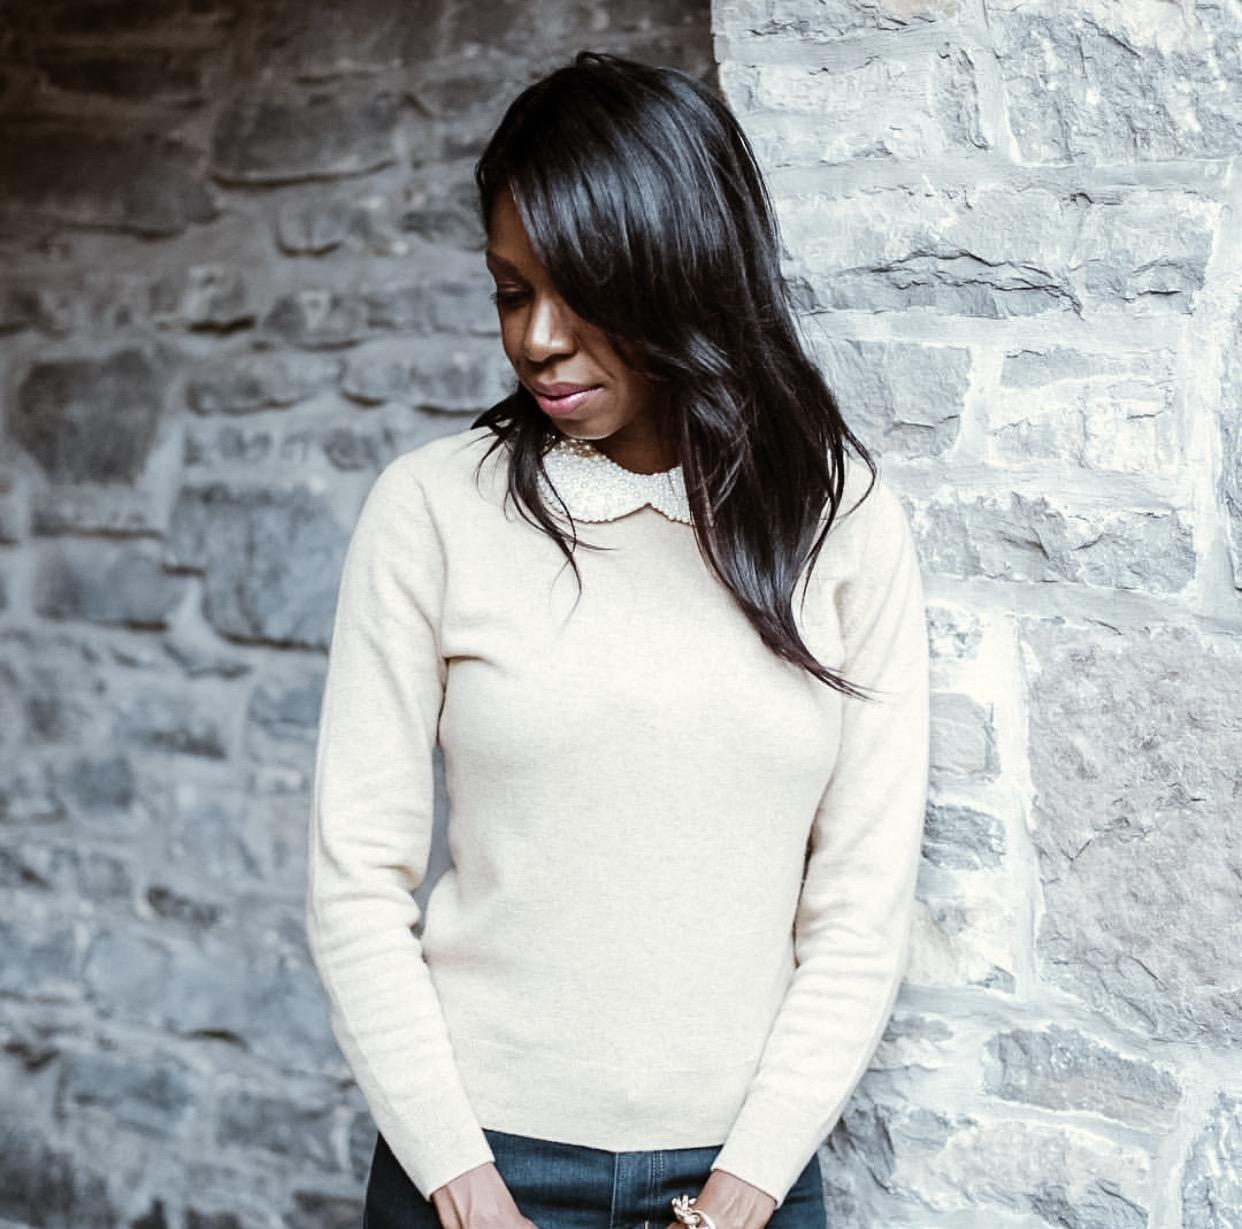 Dominique Baker with Shiny Relaxed Hair